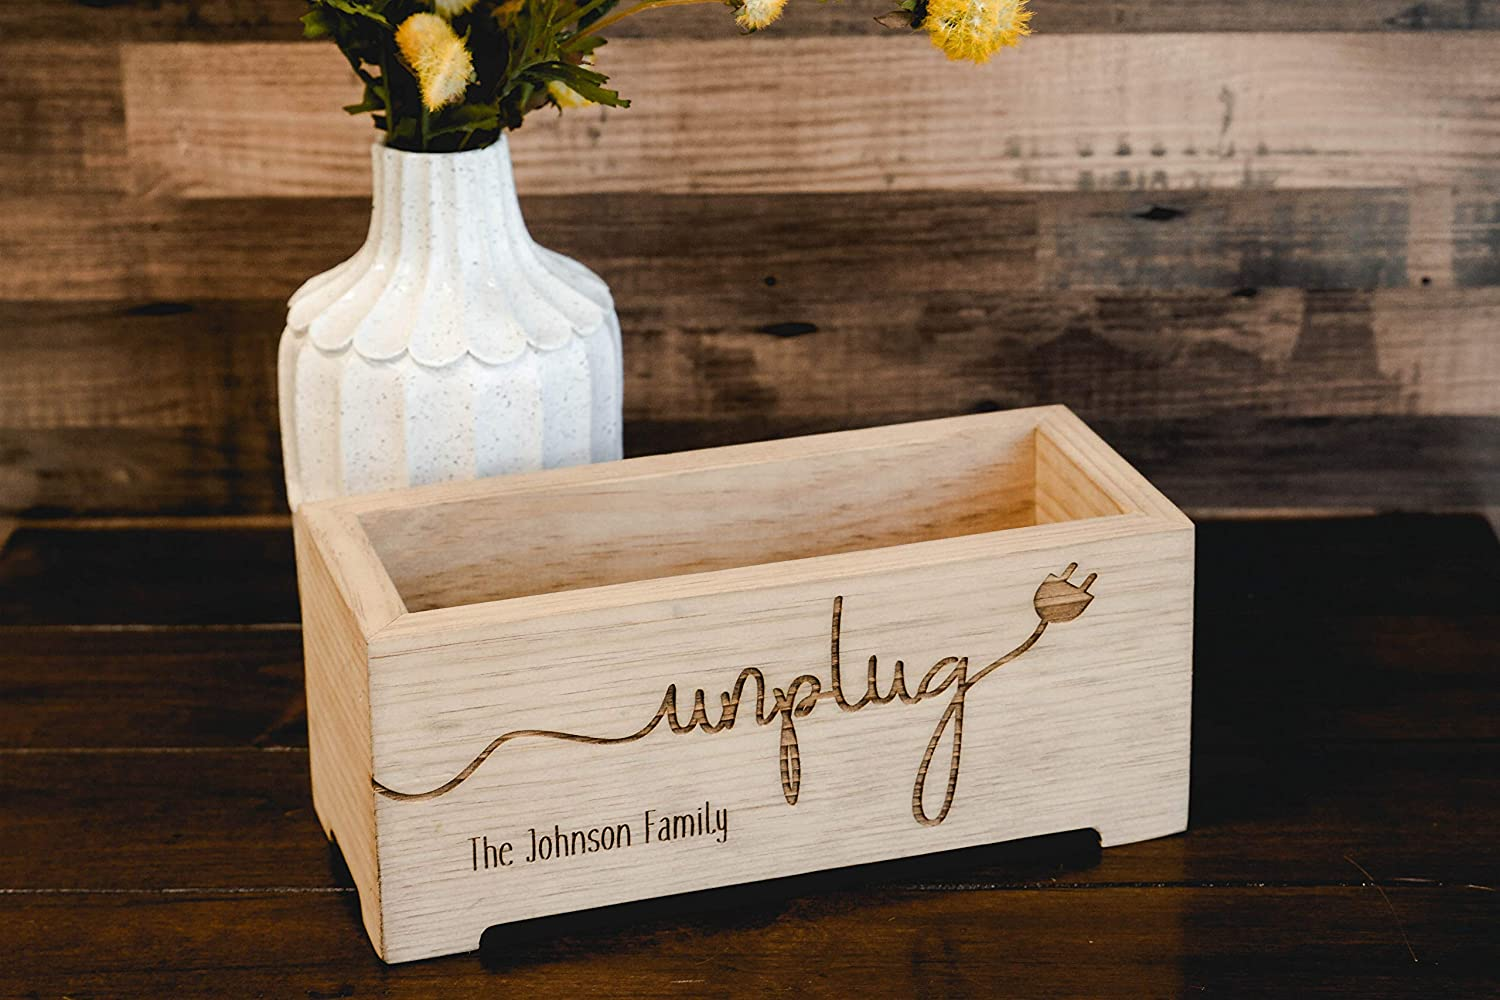 Personalized Organizer Box for iPad Double Wood Box for Two Phone Unplug Box Rustic Family Cell Phone Holder Premium Unplug Box Electronics